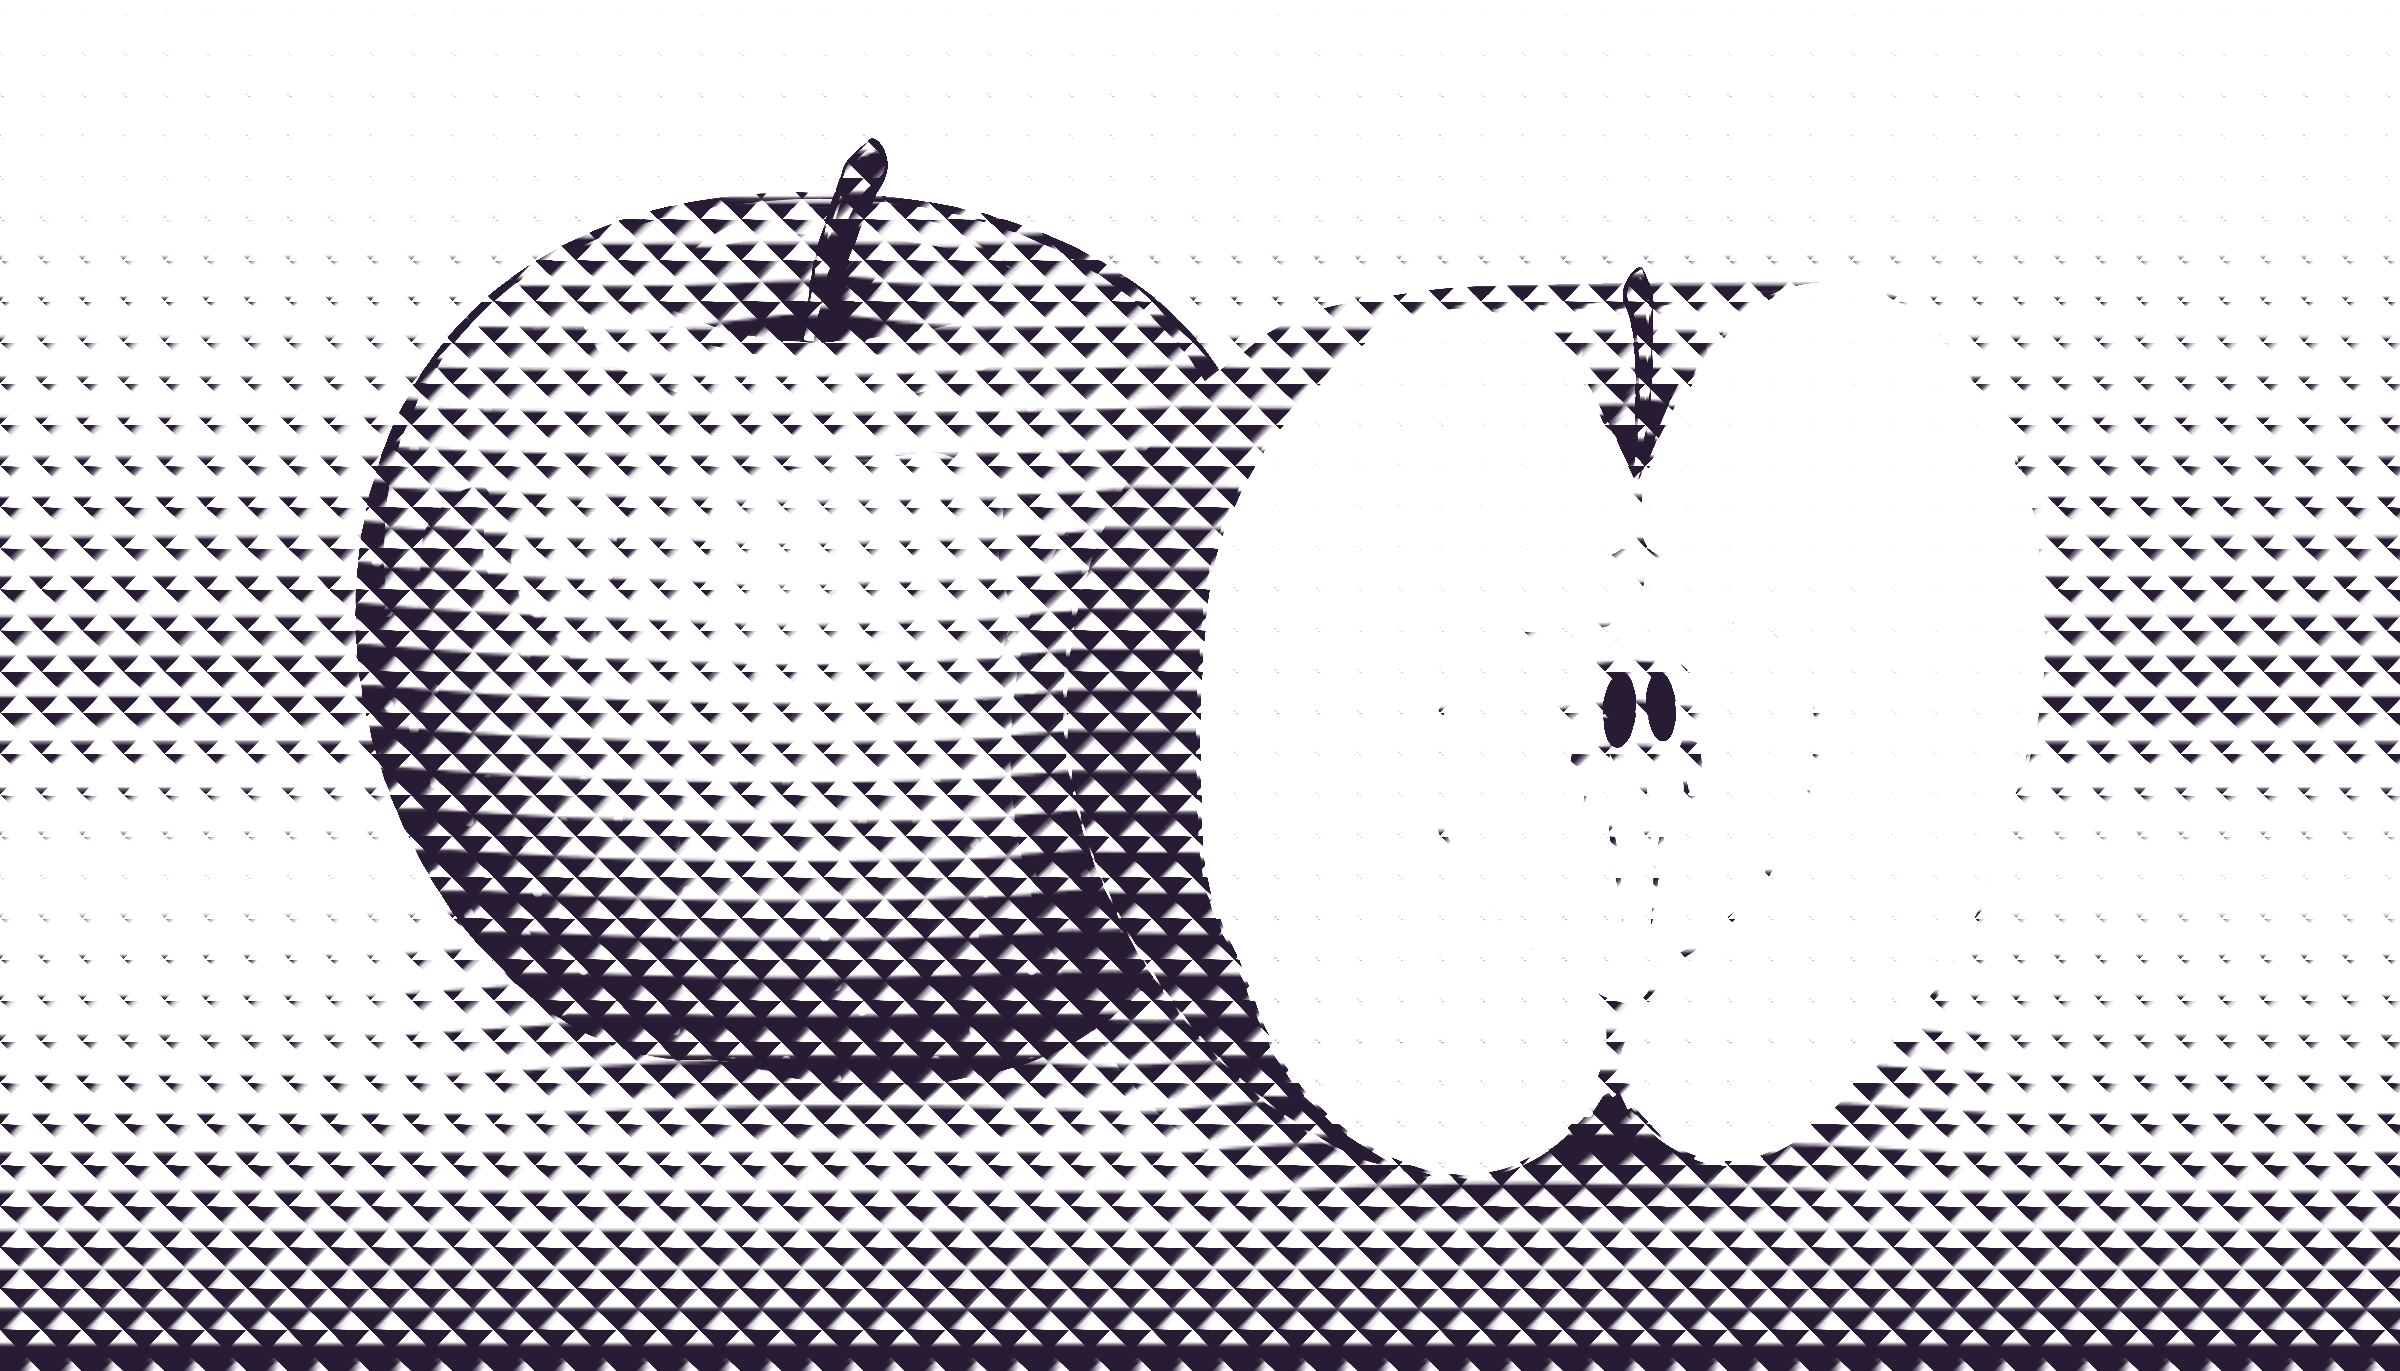 halftone apple 11 by Lazur URH